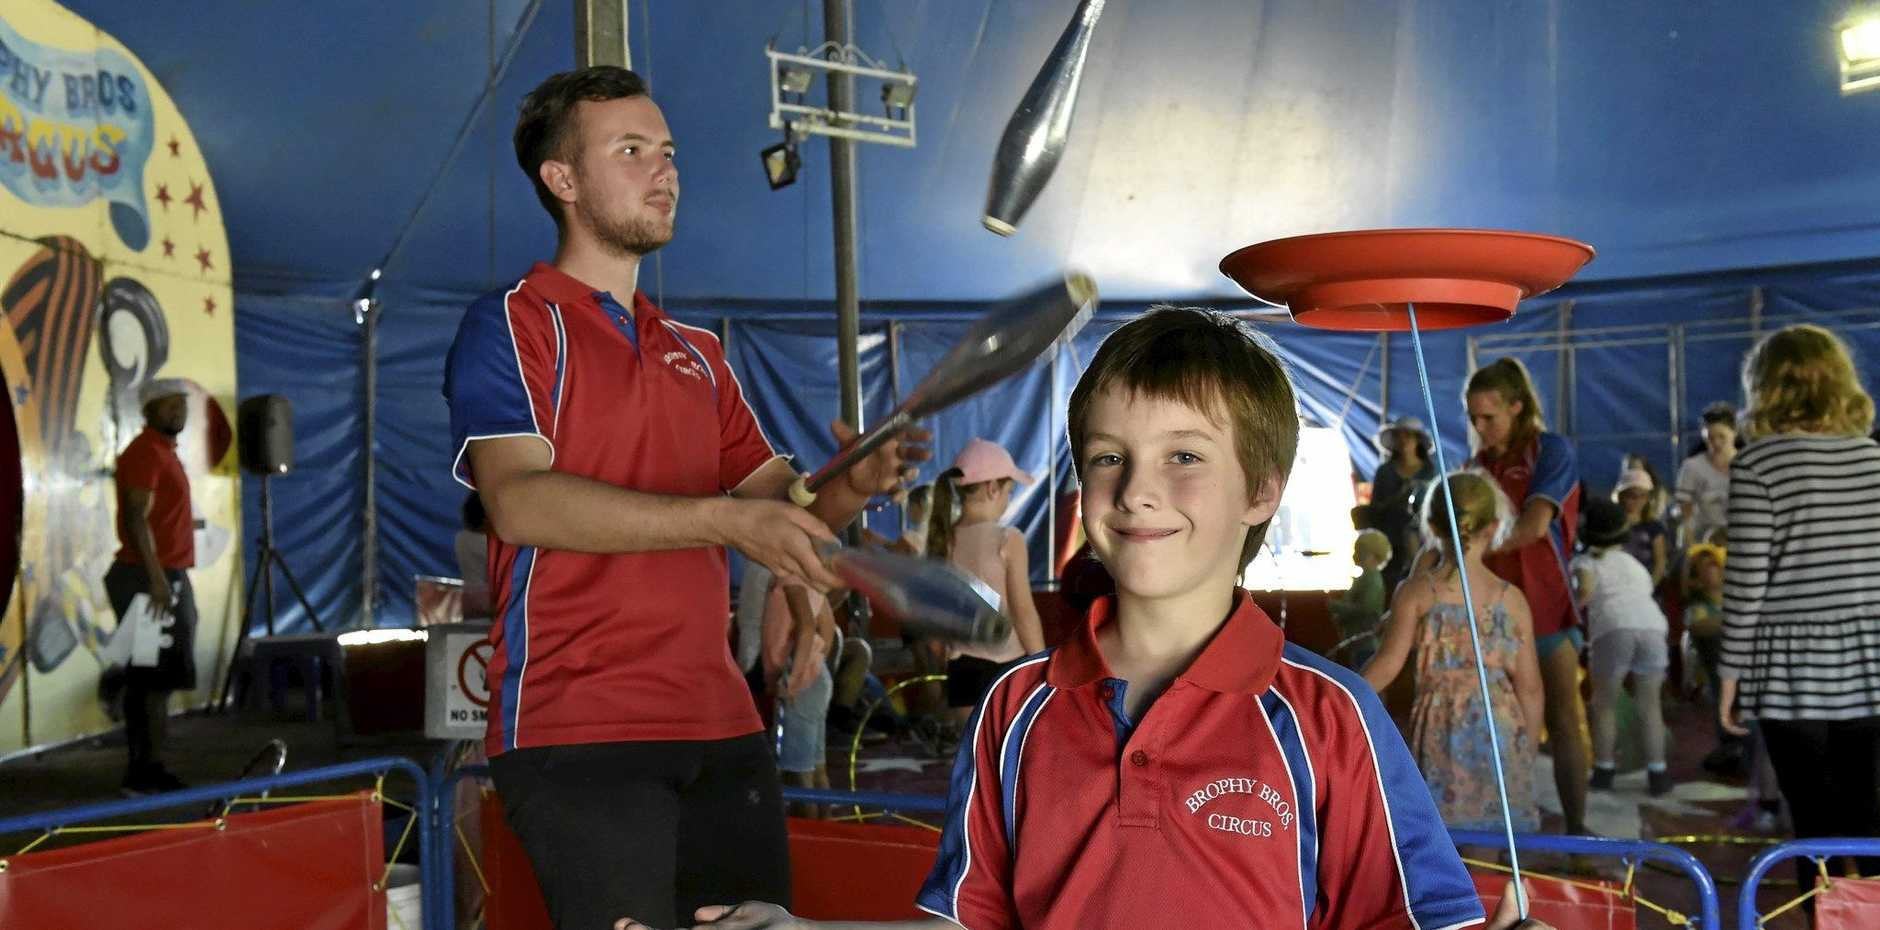 CIRCUS ACTS: Andrew (left) and Matthew Brophy show off their juggling and balancing skills.